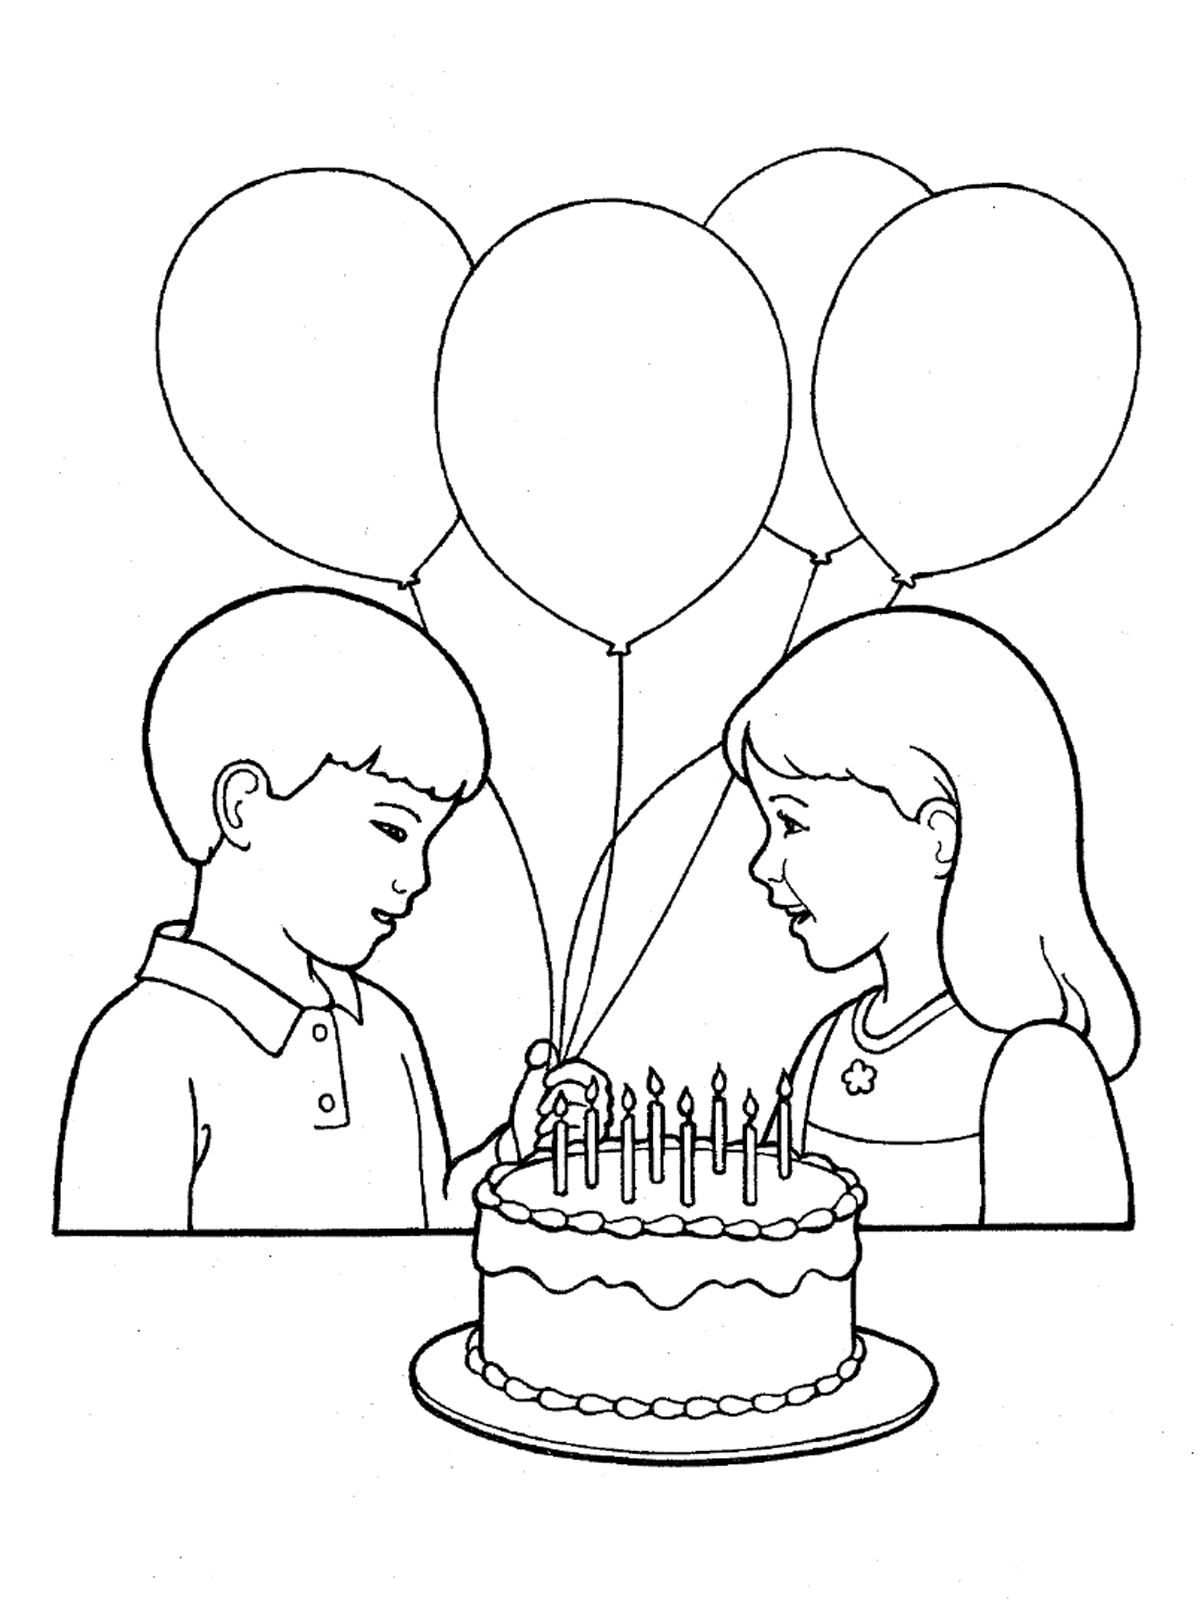 birthday party drawing step by step ; drawing-pictures-of-birthday-party-primary-children-birthday